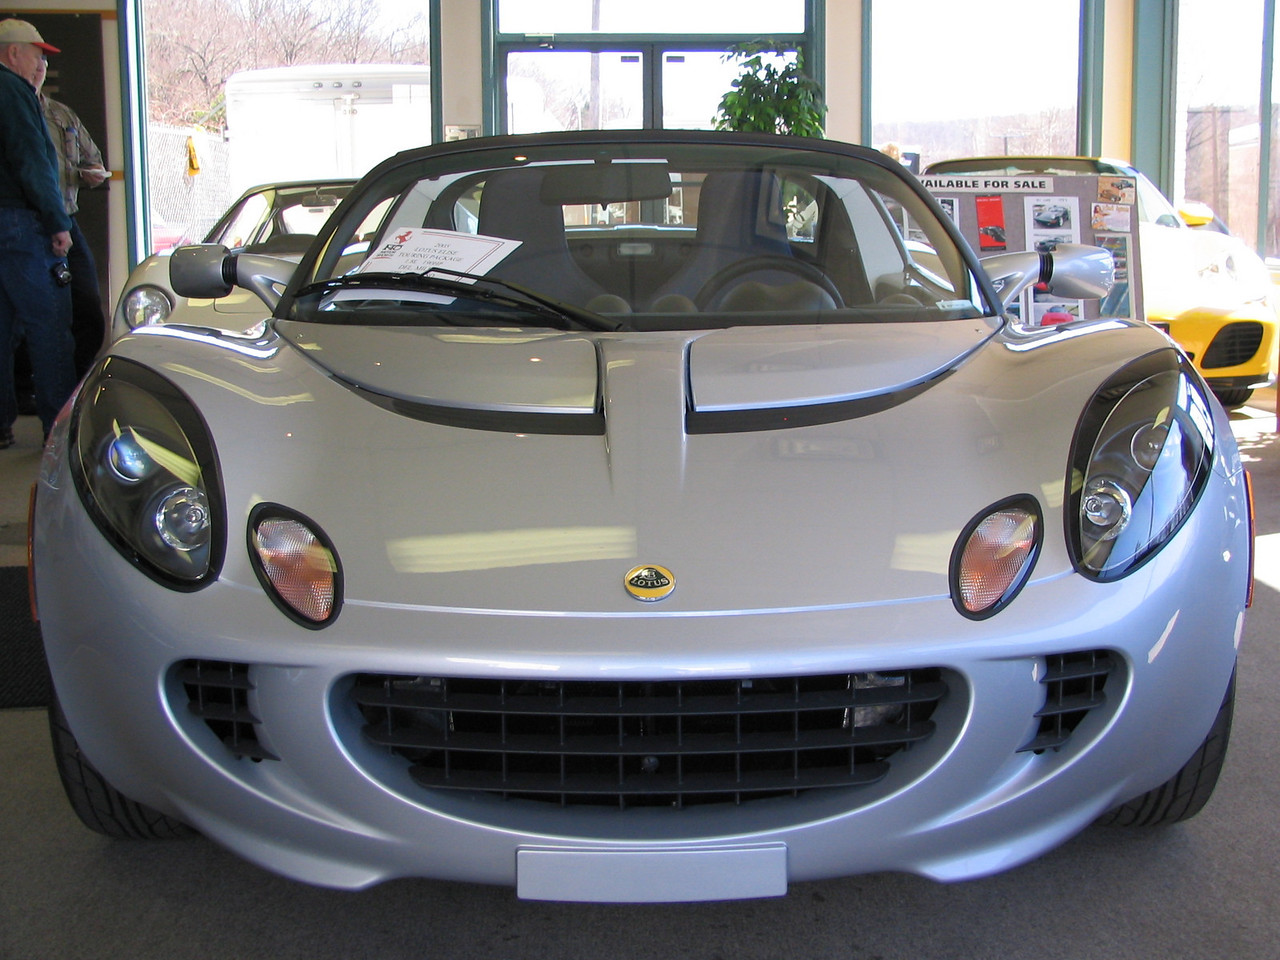 Lotus Elise. Is it just me or is this car smiling?